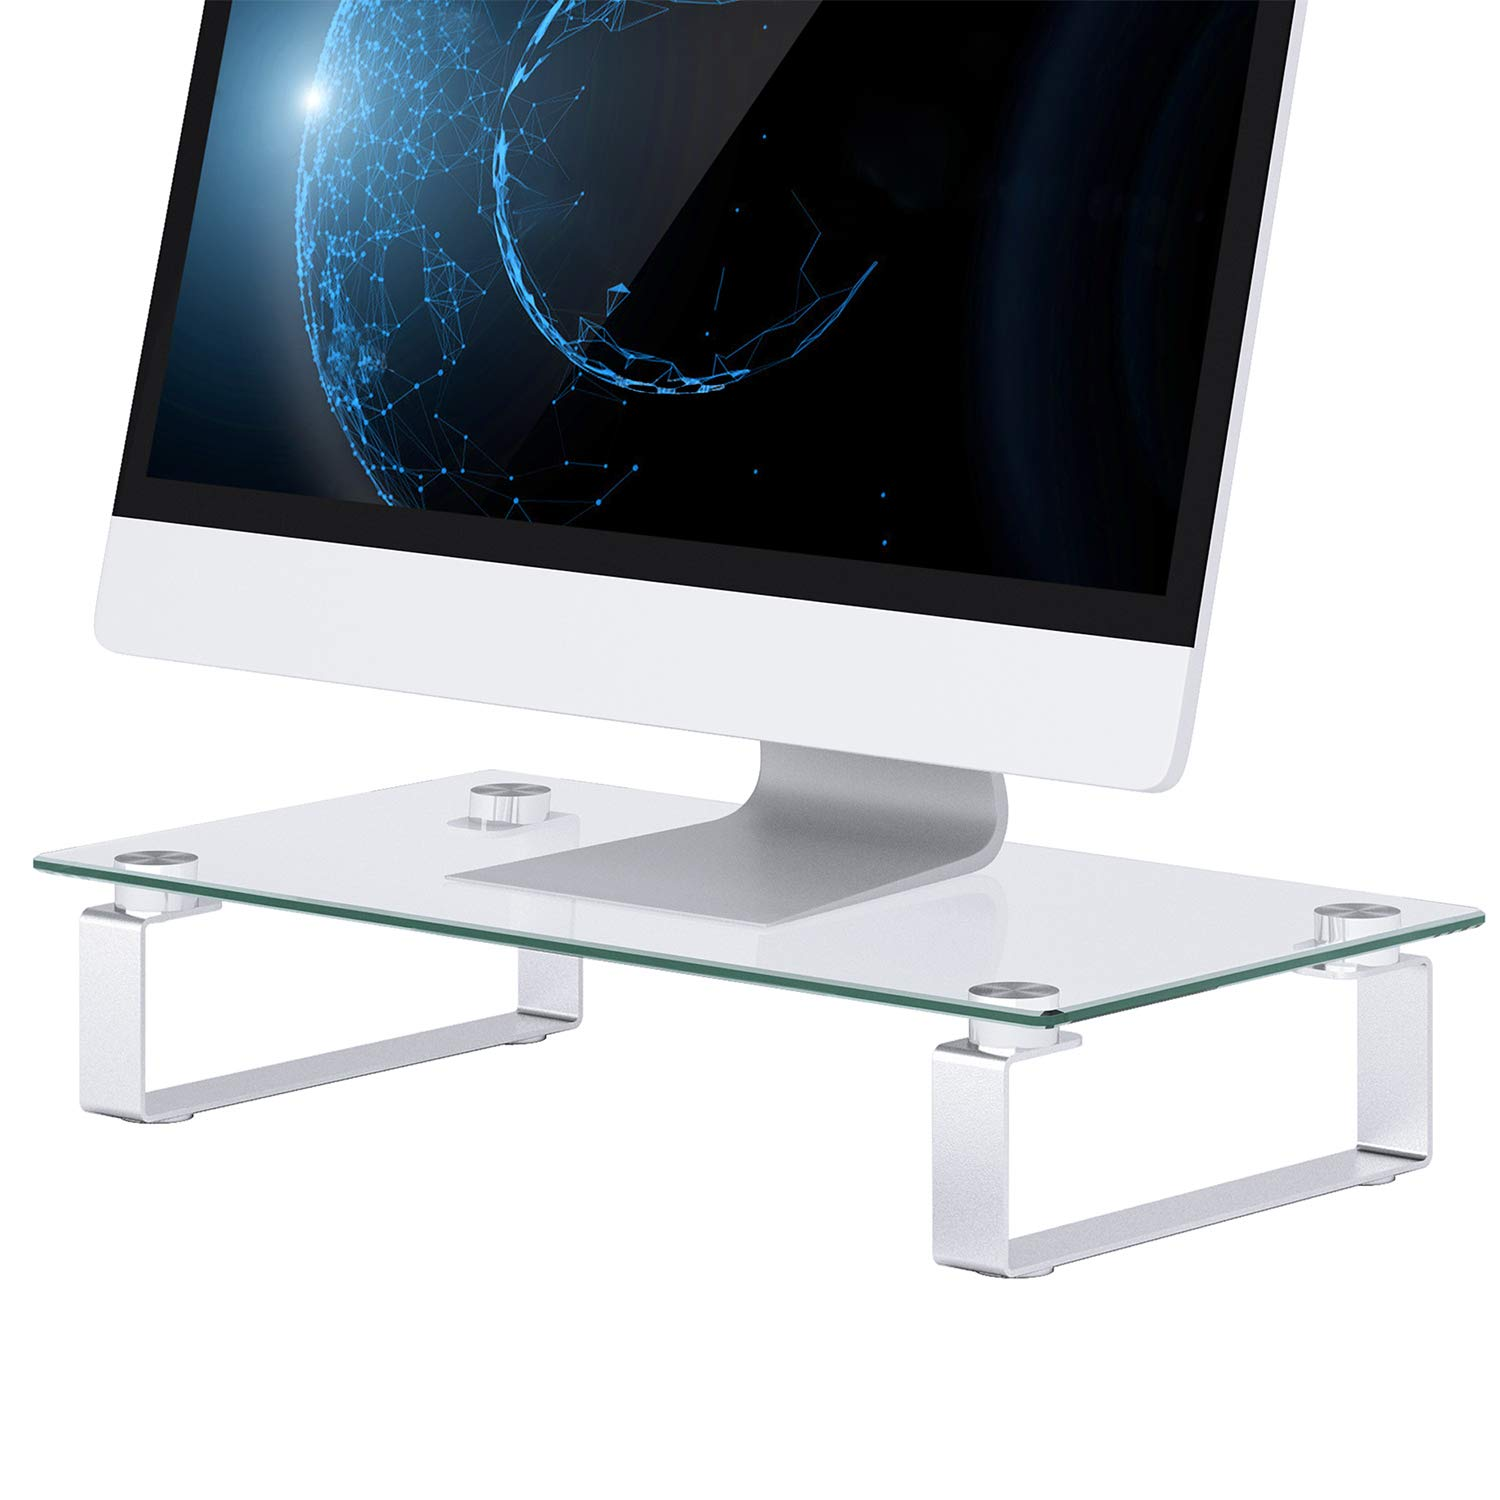 Glass Monitor Stand - Monitor Stand Riser with Anti Slip Legs, Tempered Glass Premium Ergonomic Screen Holder Suitable for LED LCD TV Monitor, Notebook, Computer up to 44lbs